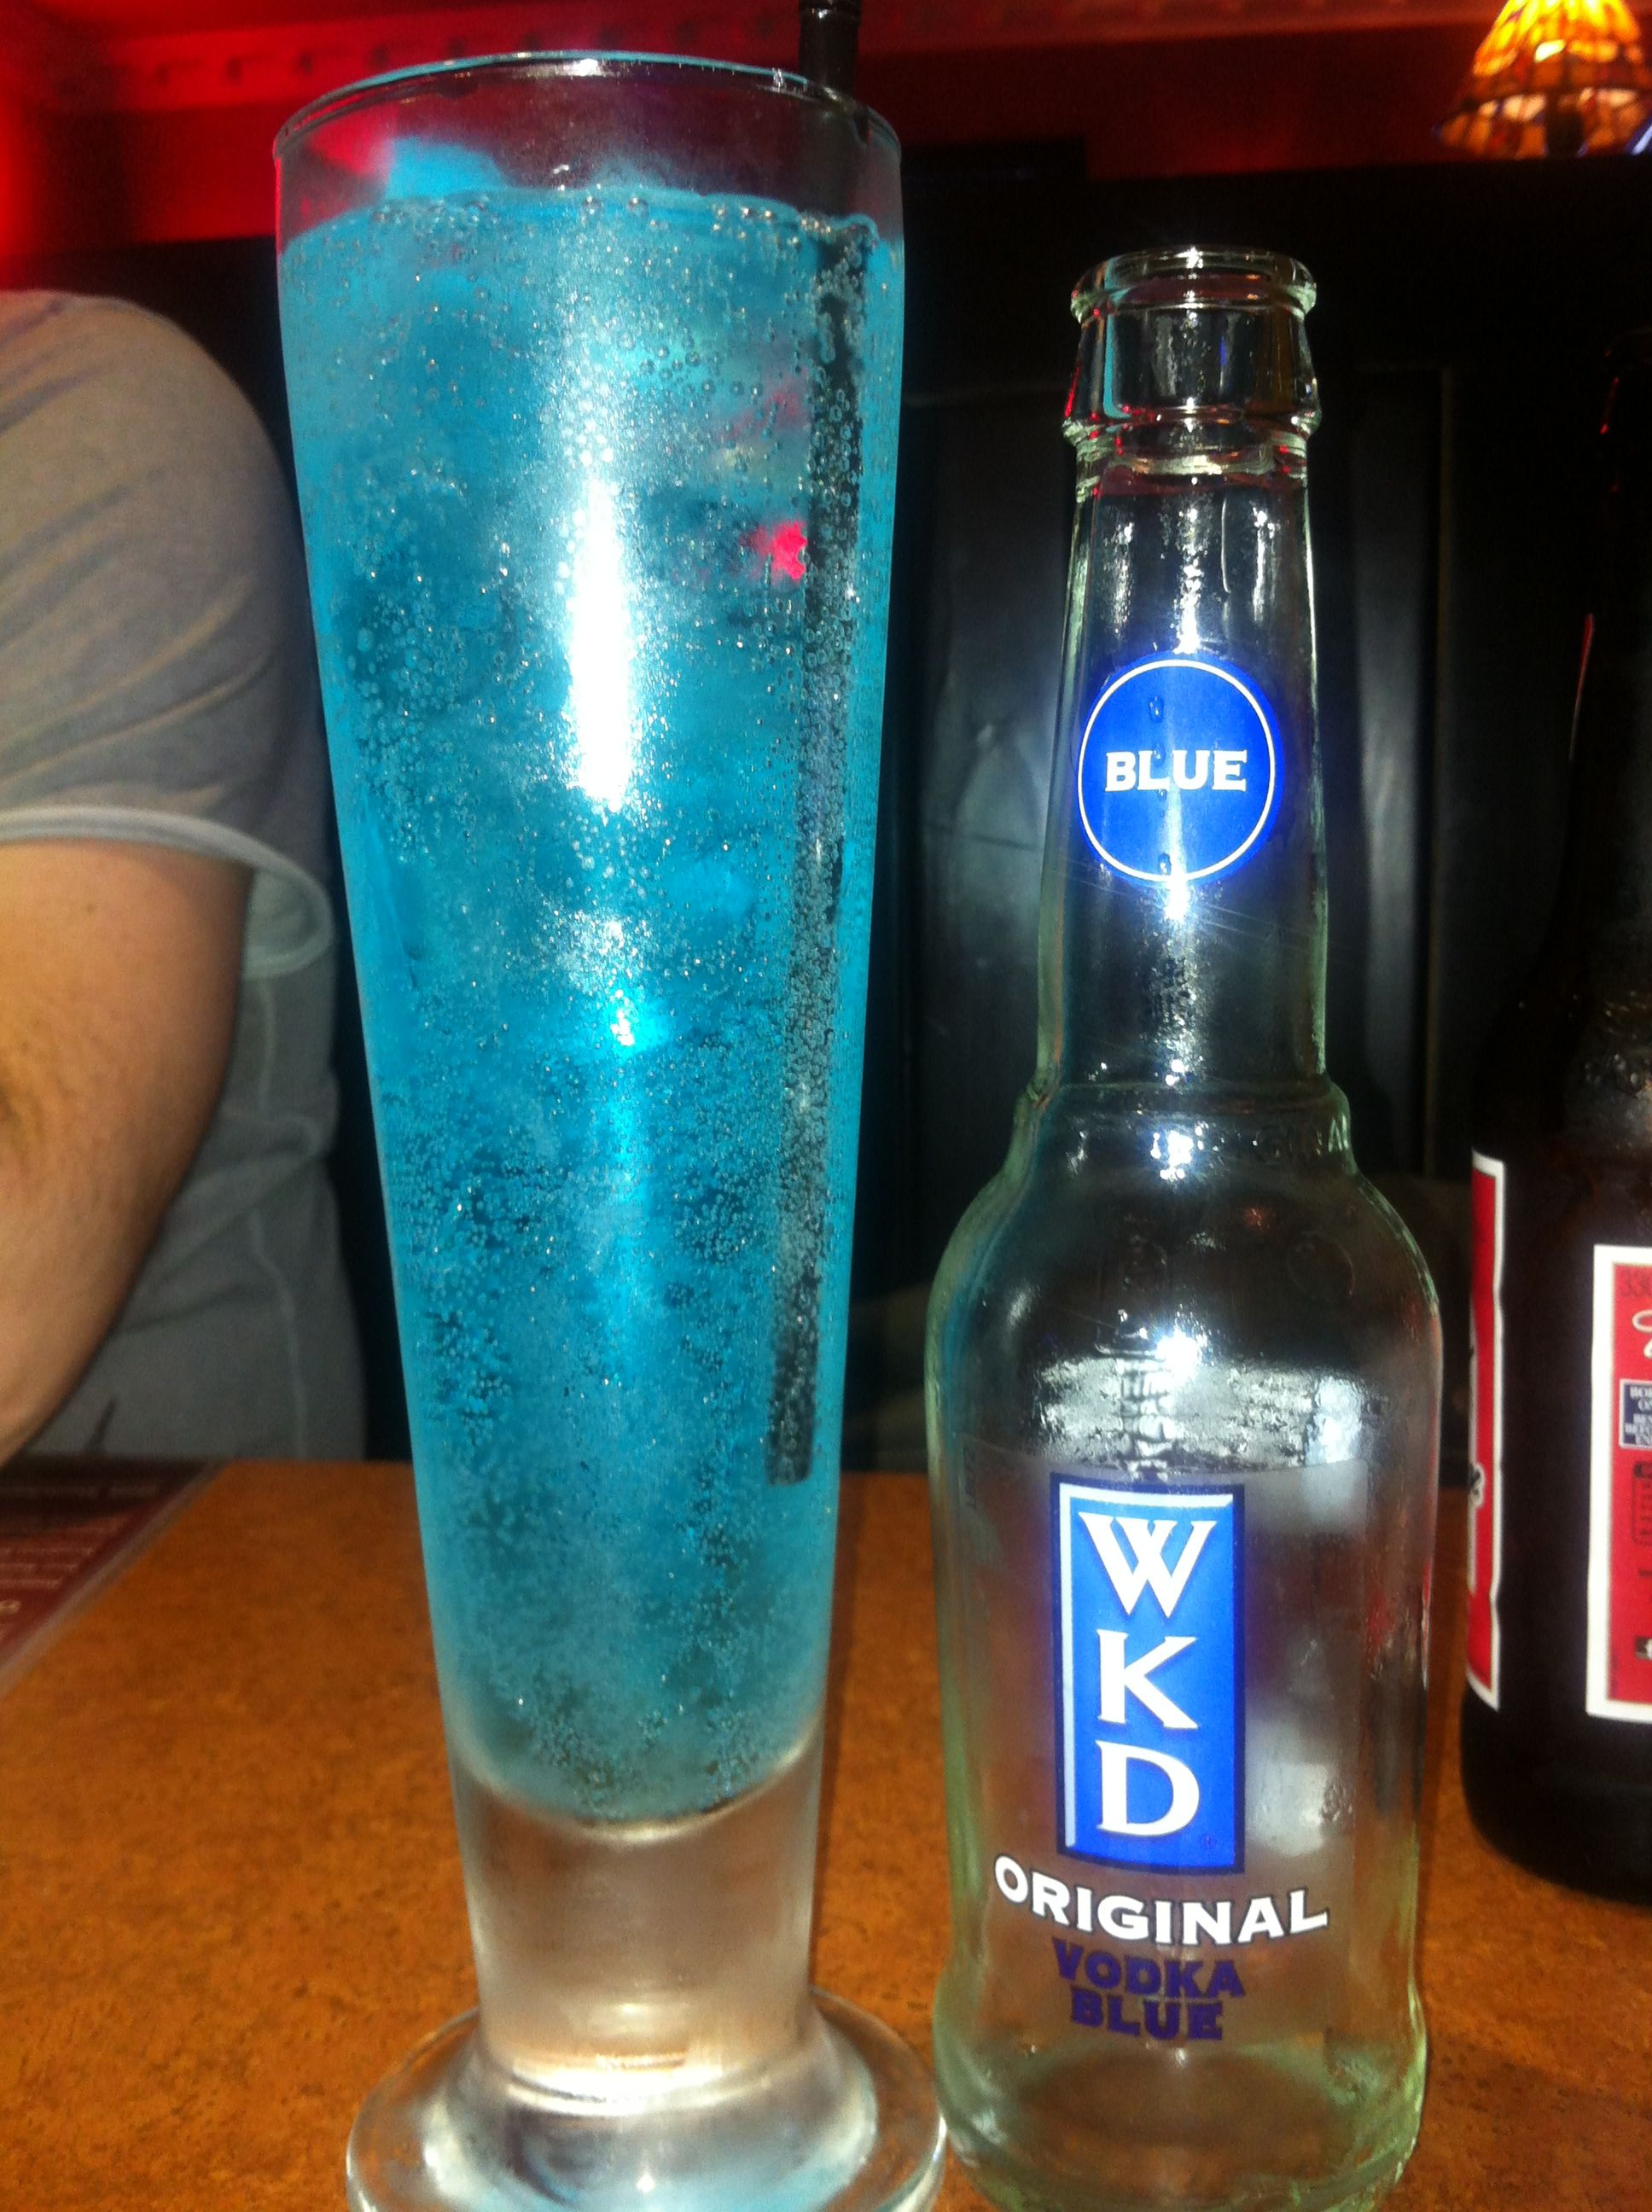 Ice Cold Blue Wkd Alcohol Vodka Wkd I don't always drink, but when i do i drink wkd blue alone upstairs hiding in my room from my family's christmas. ice cold blue wkd alcohol vodka wkd